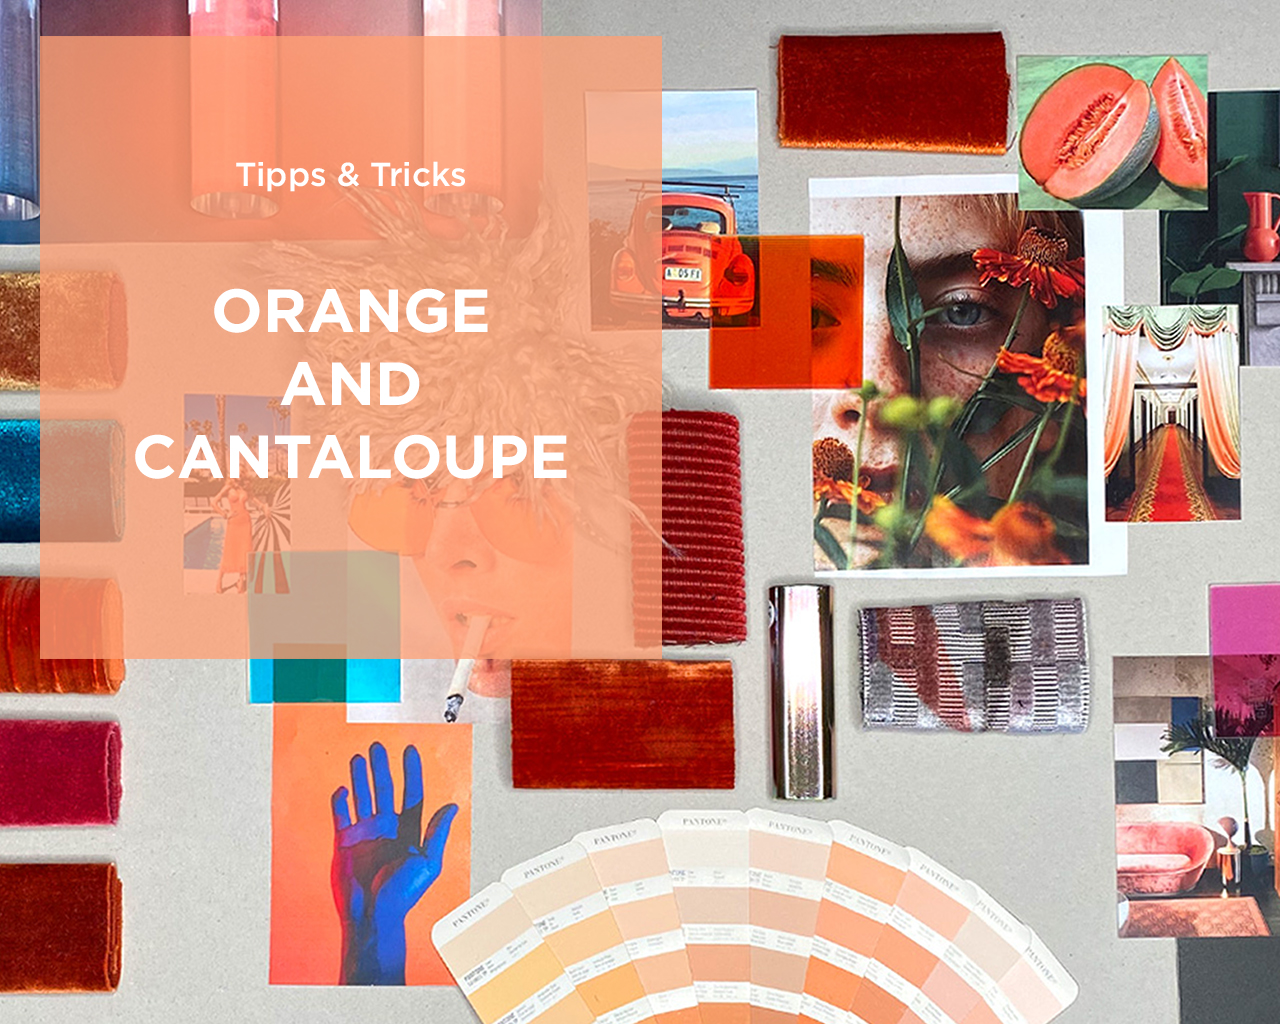 Trend Colours 2020 Orange And Cantaloupe Bretz Wohntraume Gmbh Pair this paint color with darker wood cabinety. trend colours 2020 orange and